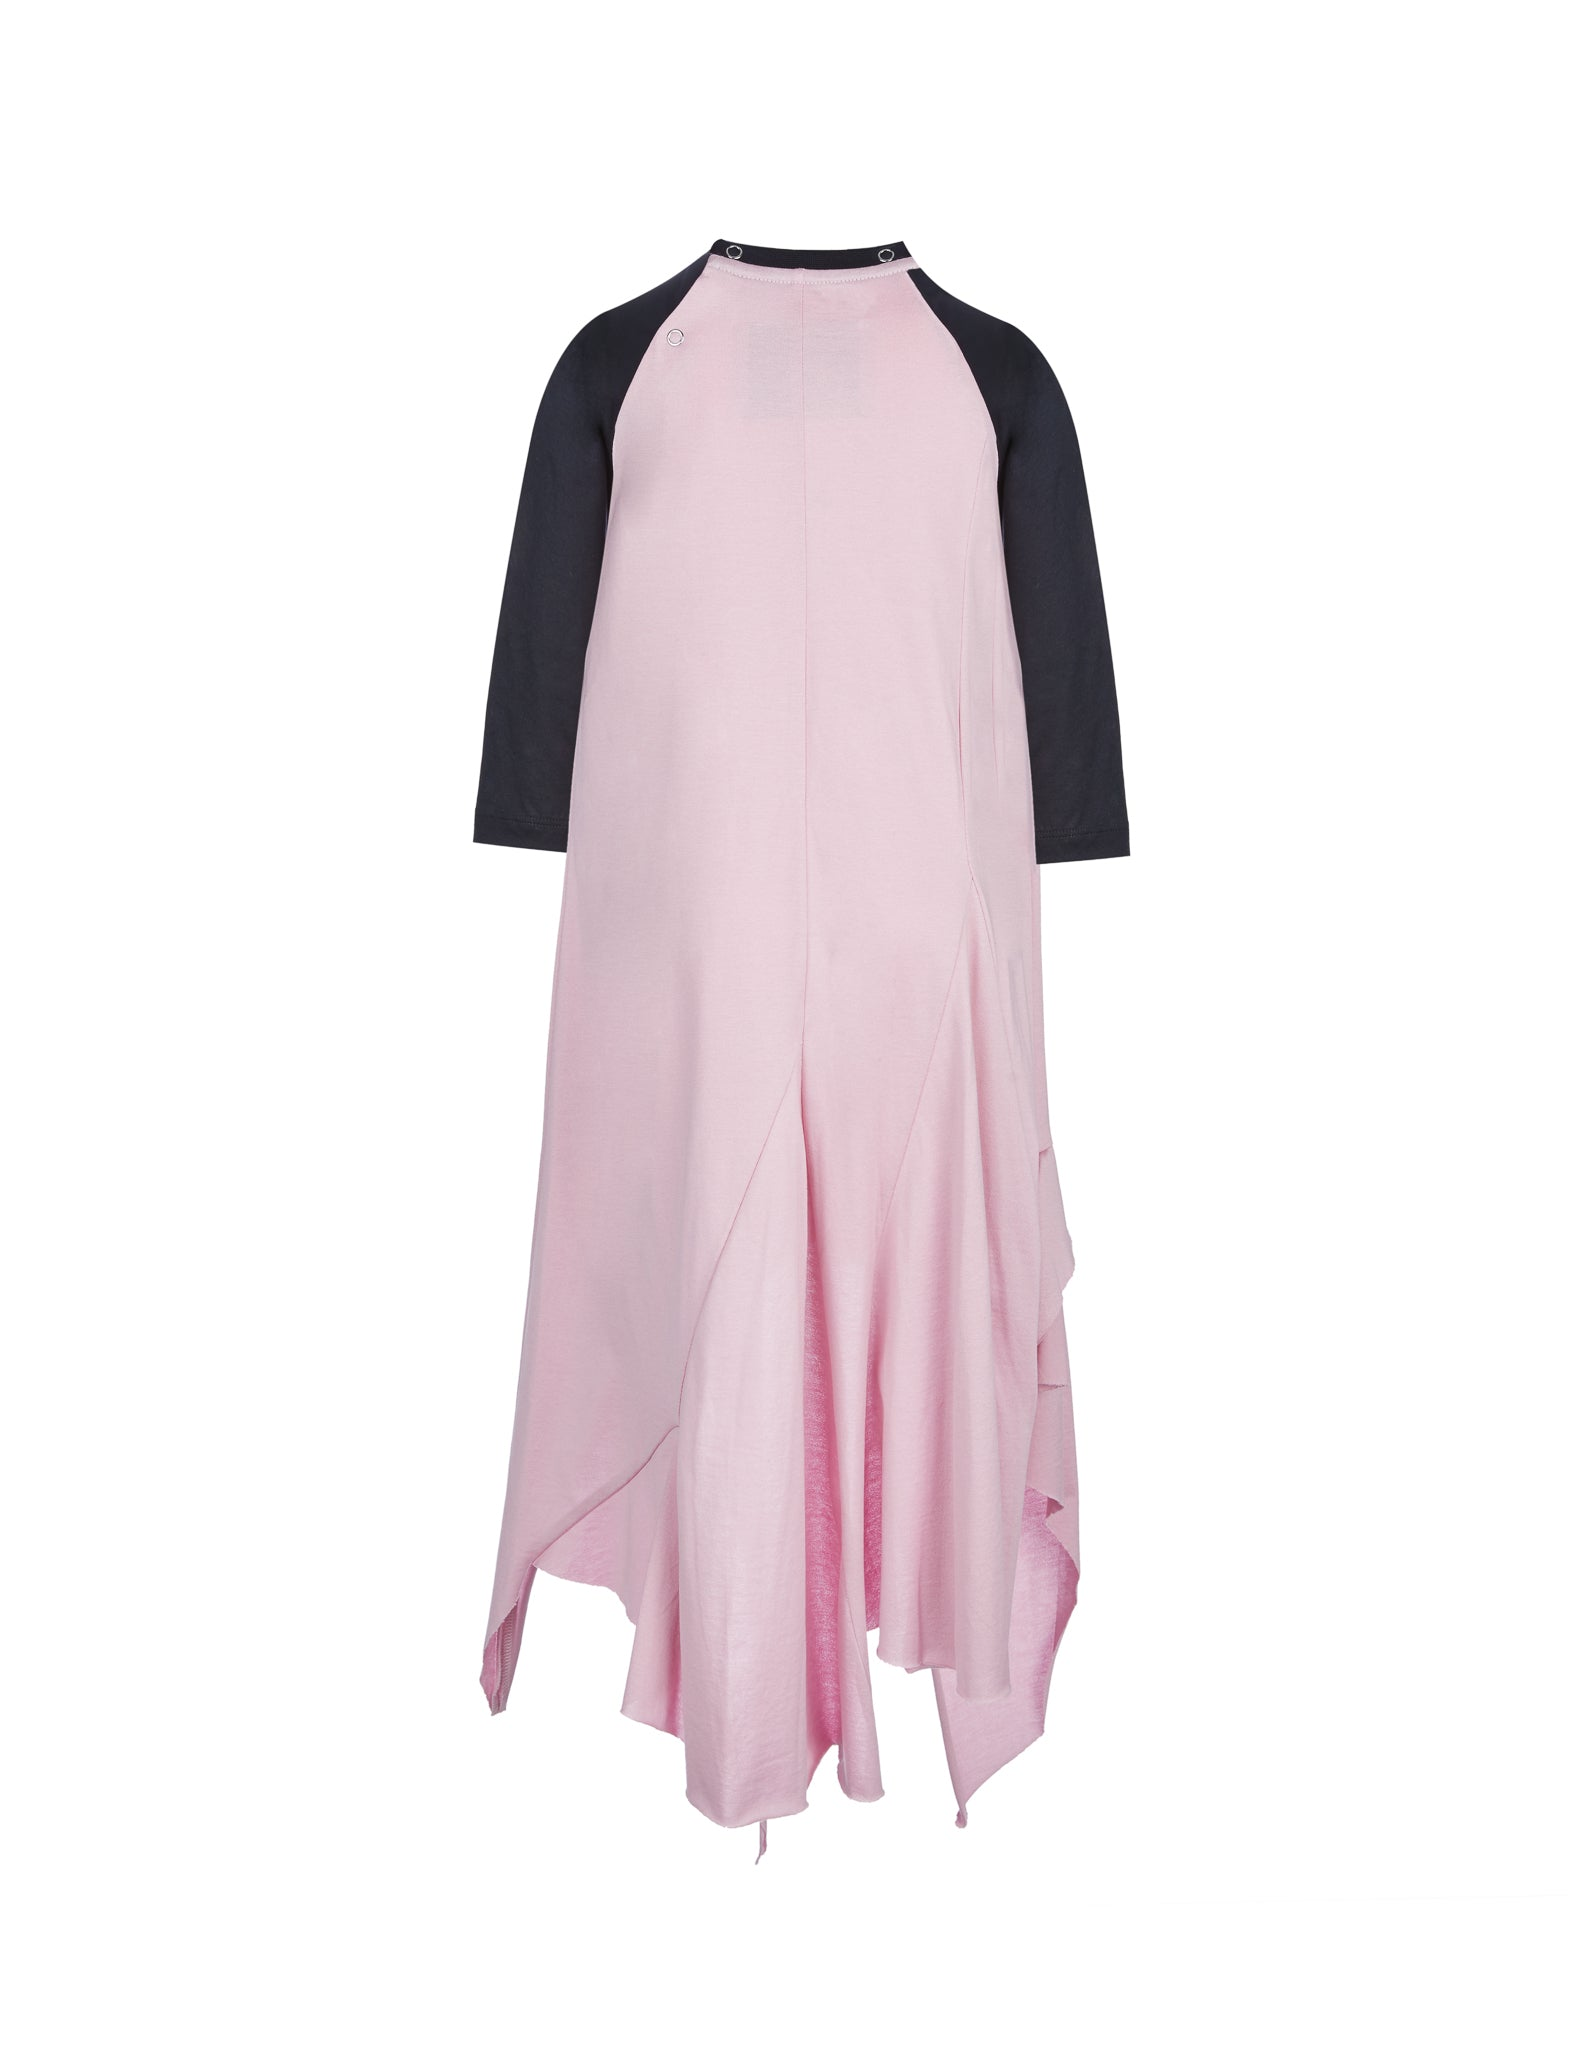 JERSEY DRESS WITH RAGLAN SLEEVES